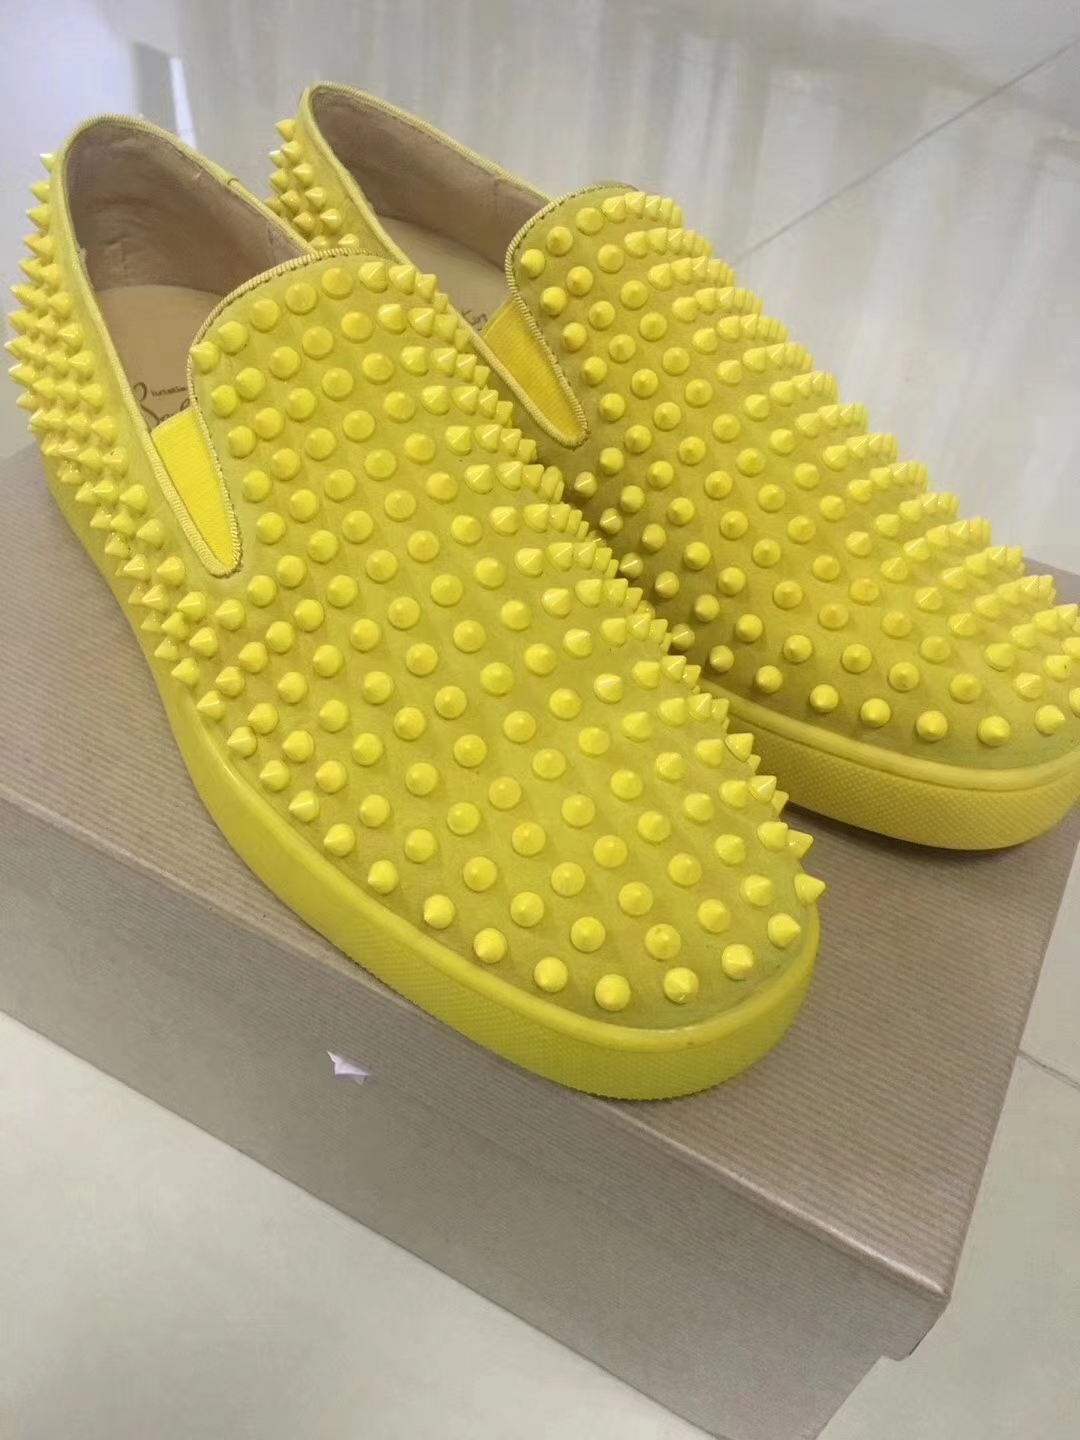 84798c6760c Louboutin For Man Sneakers Christian Louboutin Flat Yellow Suede Spike Boat  Shoes